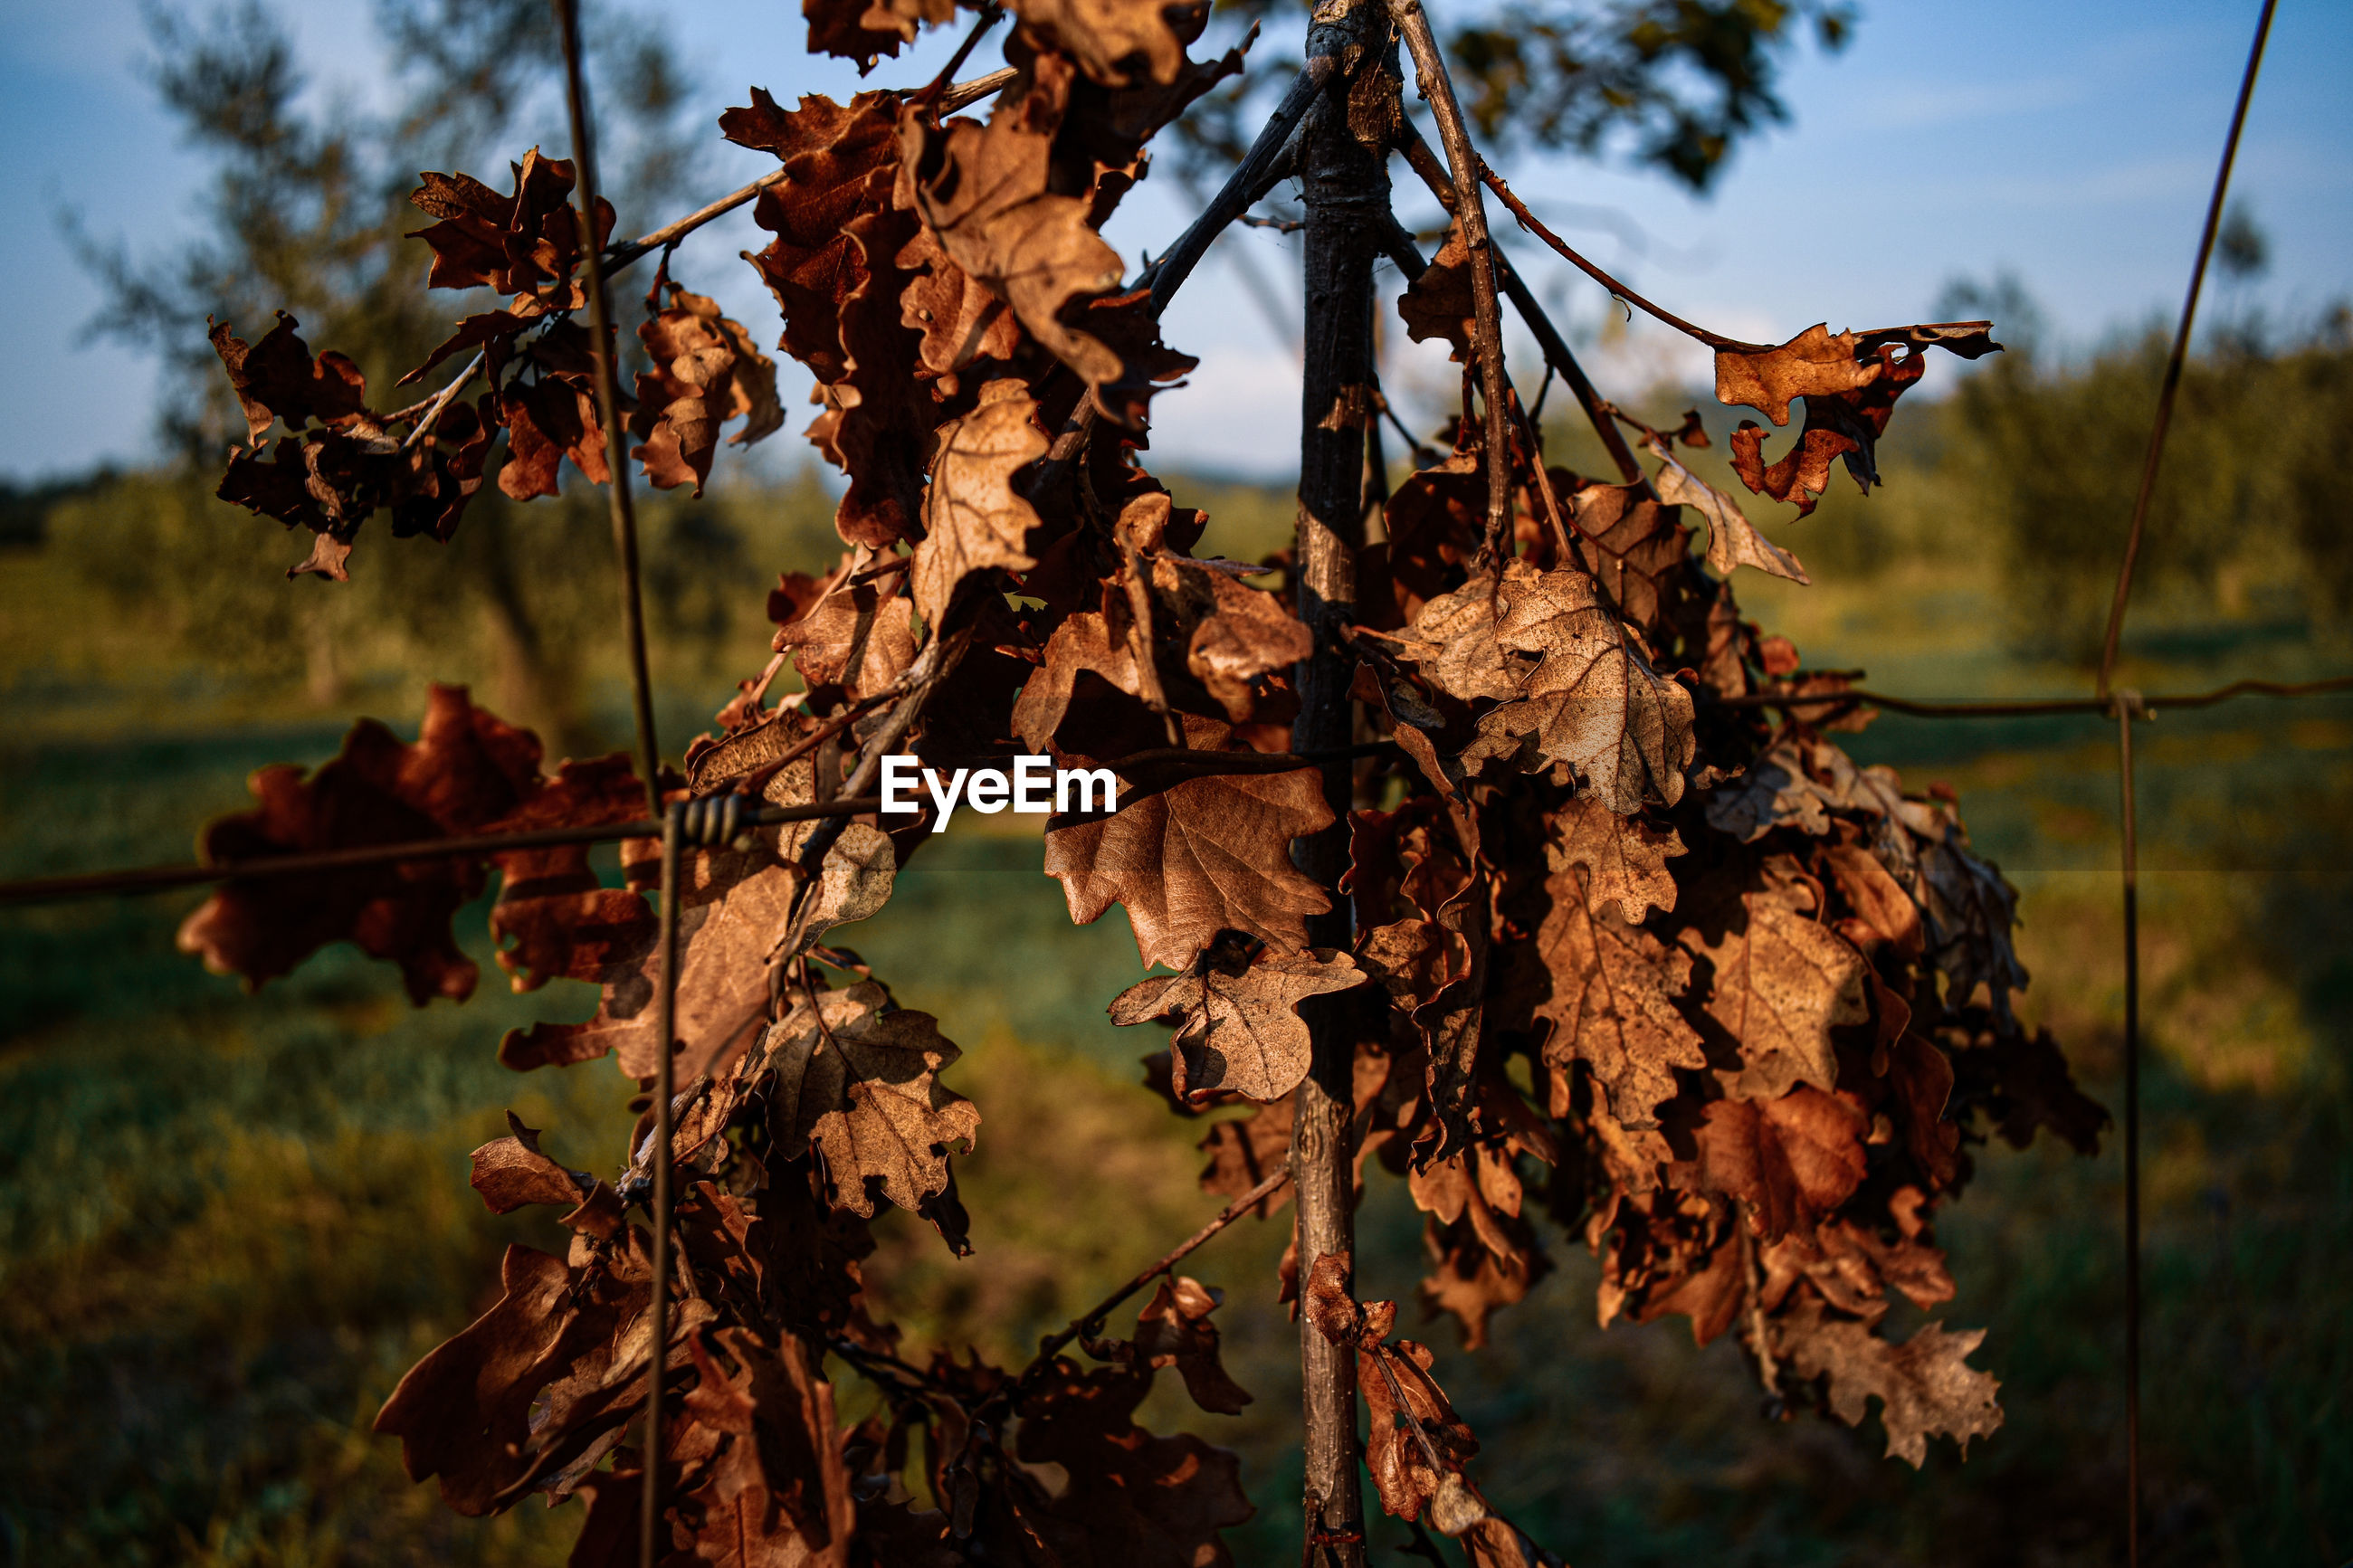 CLOSE-UP OF DRIED AUTUMN LEAVES ON TREE